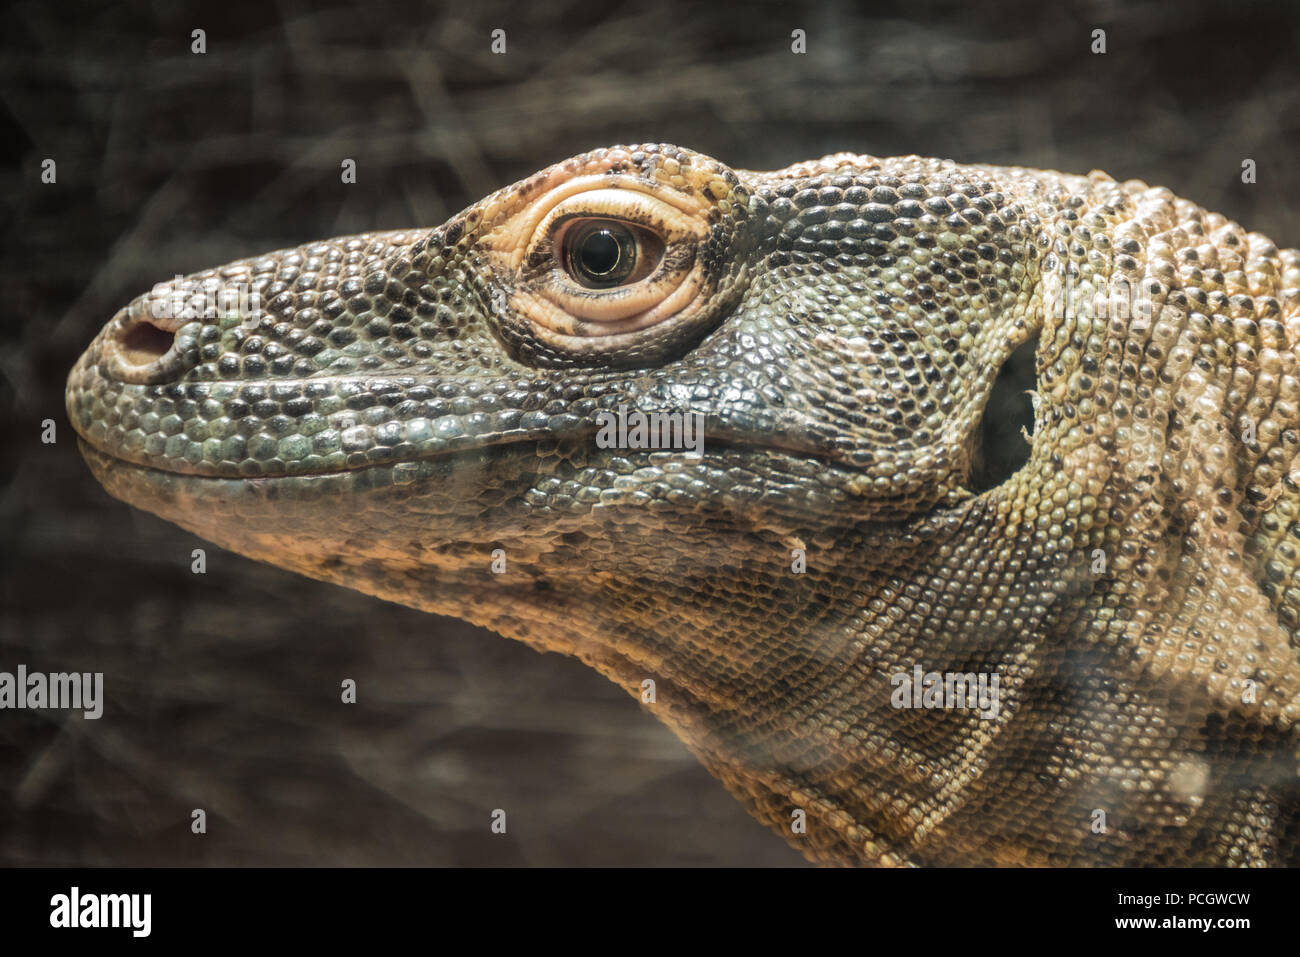 Profil de dragon de Komodo. Photo Stock